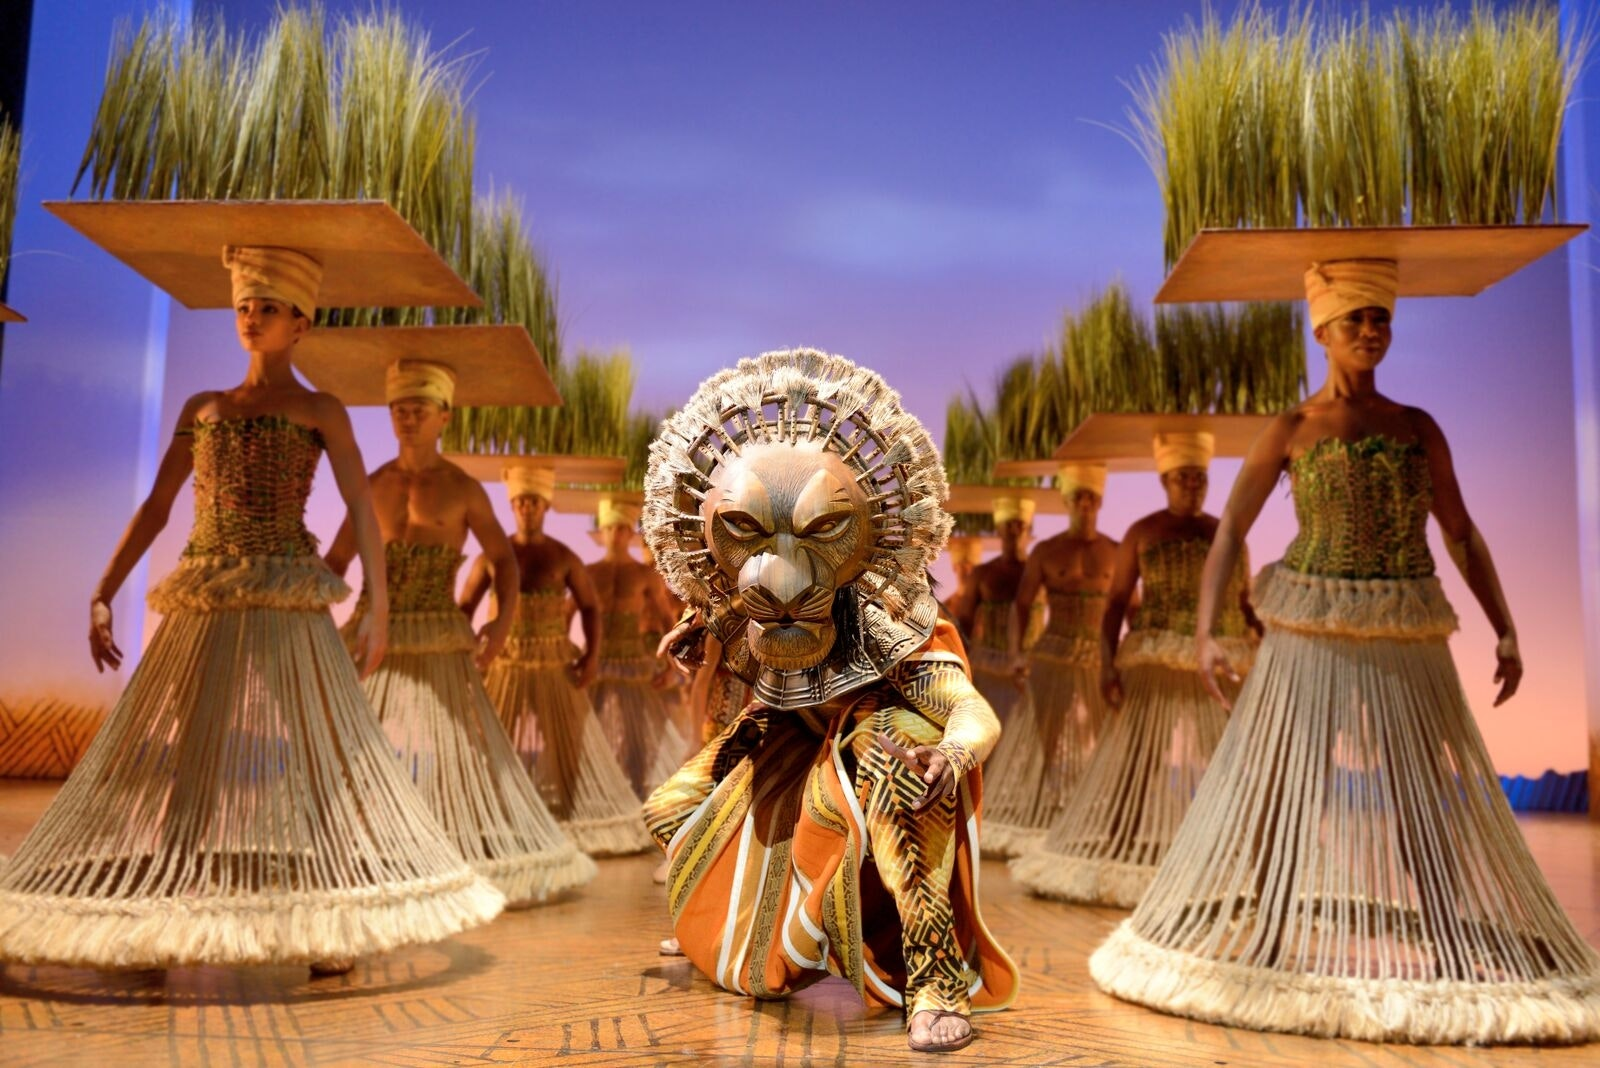 Lions, Puppets & Masks: Everything you need to know about the puppetry of The Lion King